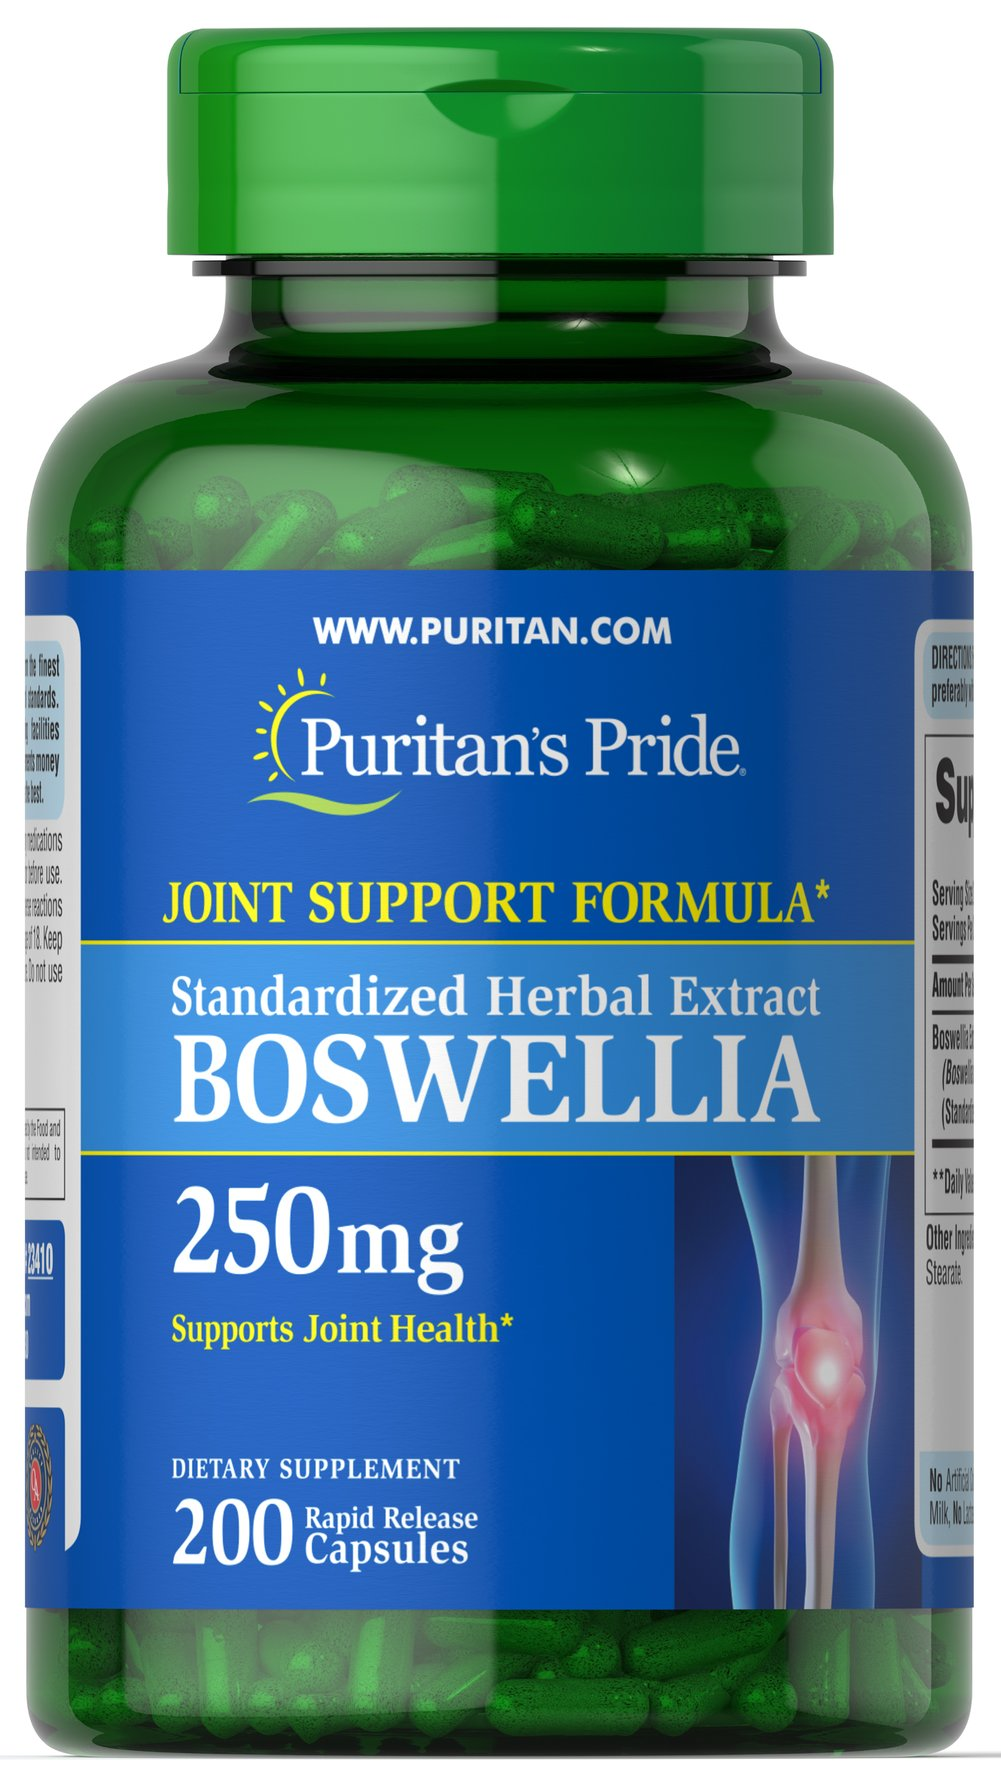 Boswellia Standardized Extract 250mg <p>Standardized to Contain 65% Boswellic Acid, 162.5 mg.</p><p><strong>Boswellia</strong> is a centuries old herb that helps support the structural health of cartilage.**</p> 200 Capsules 250 mg $28.79